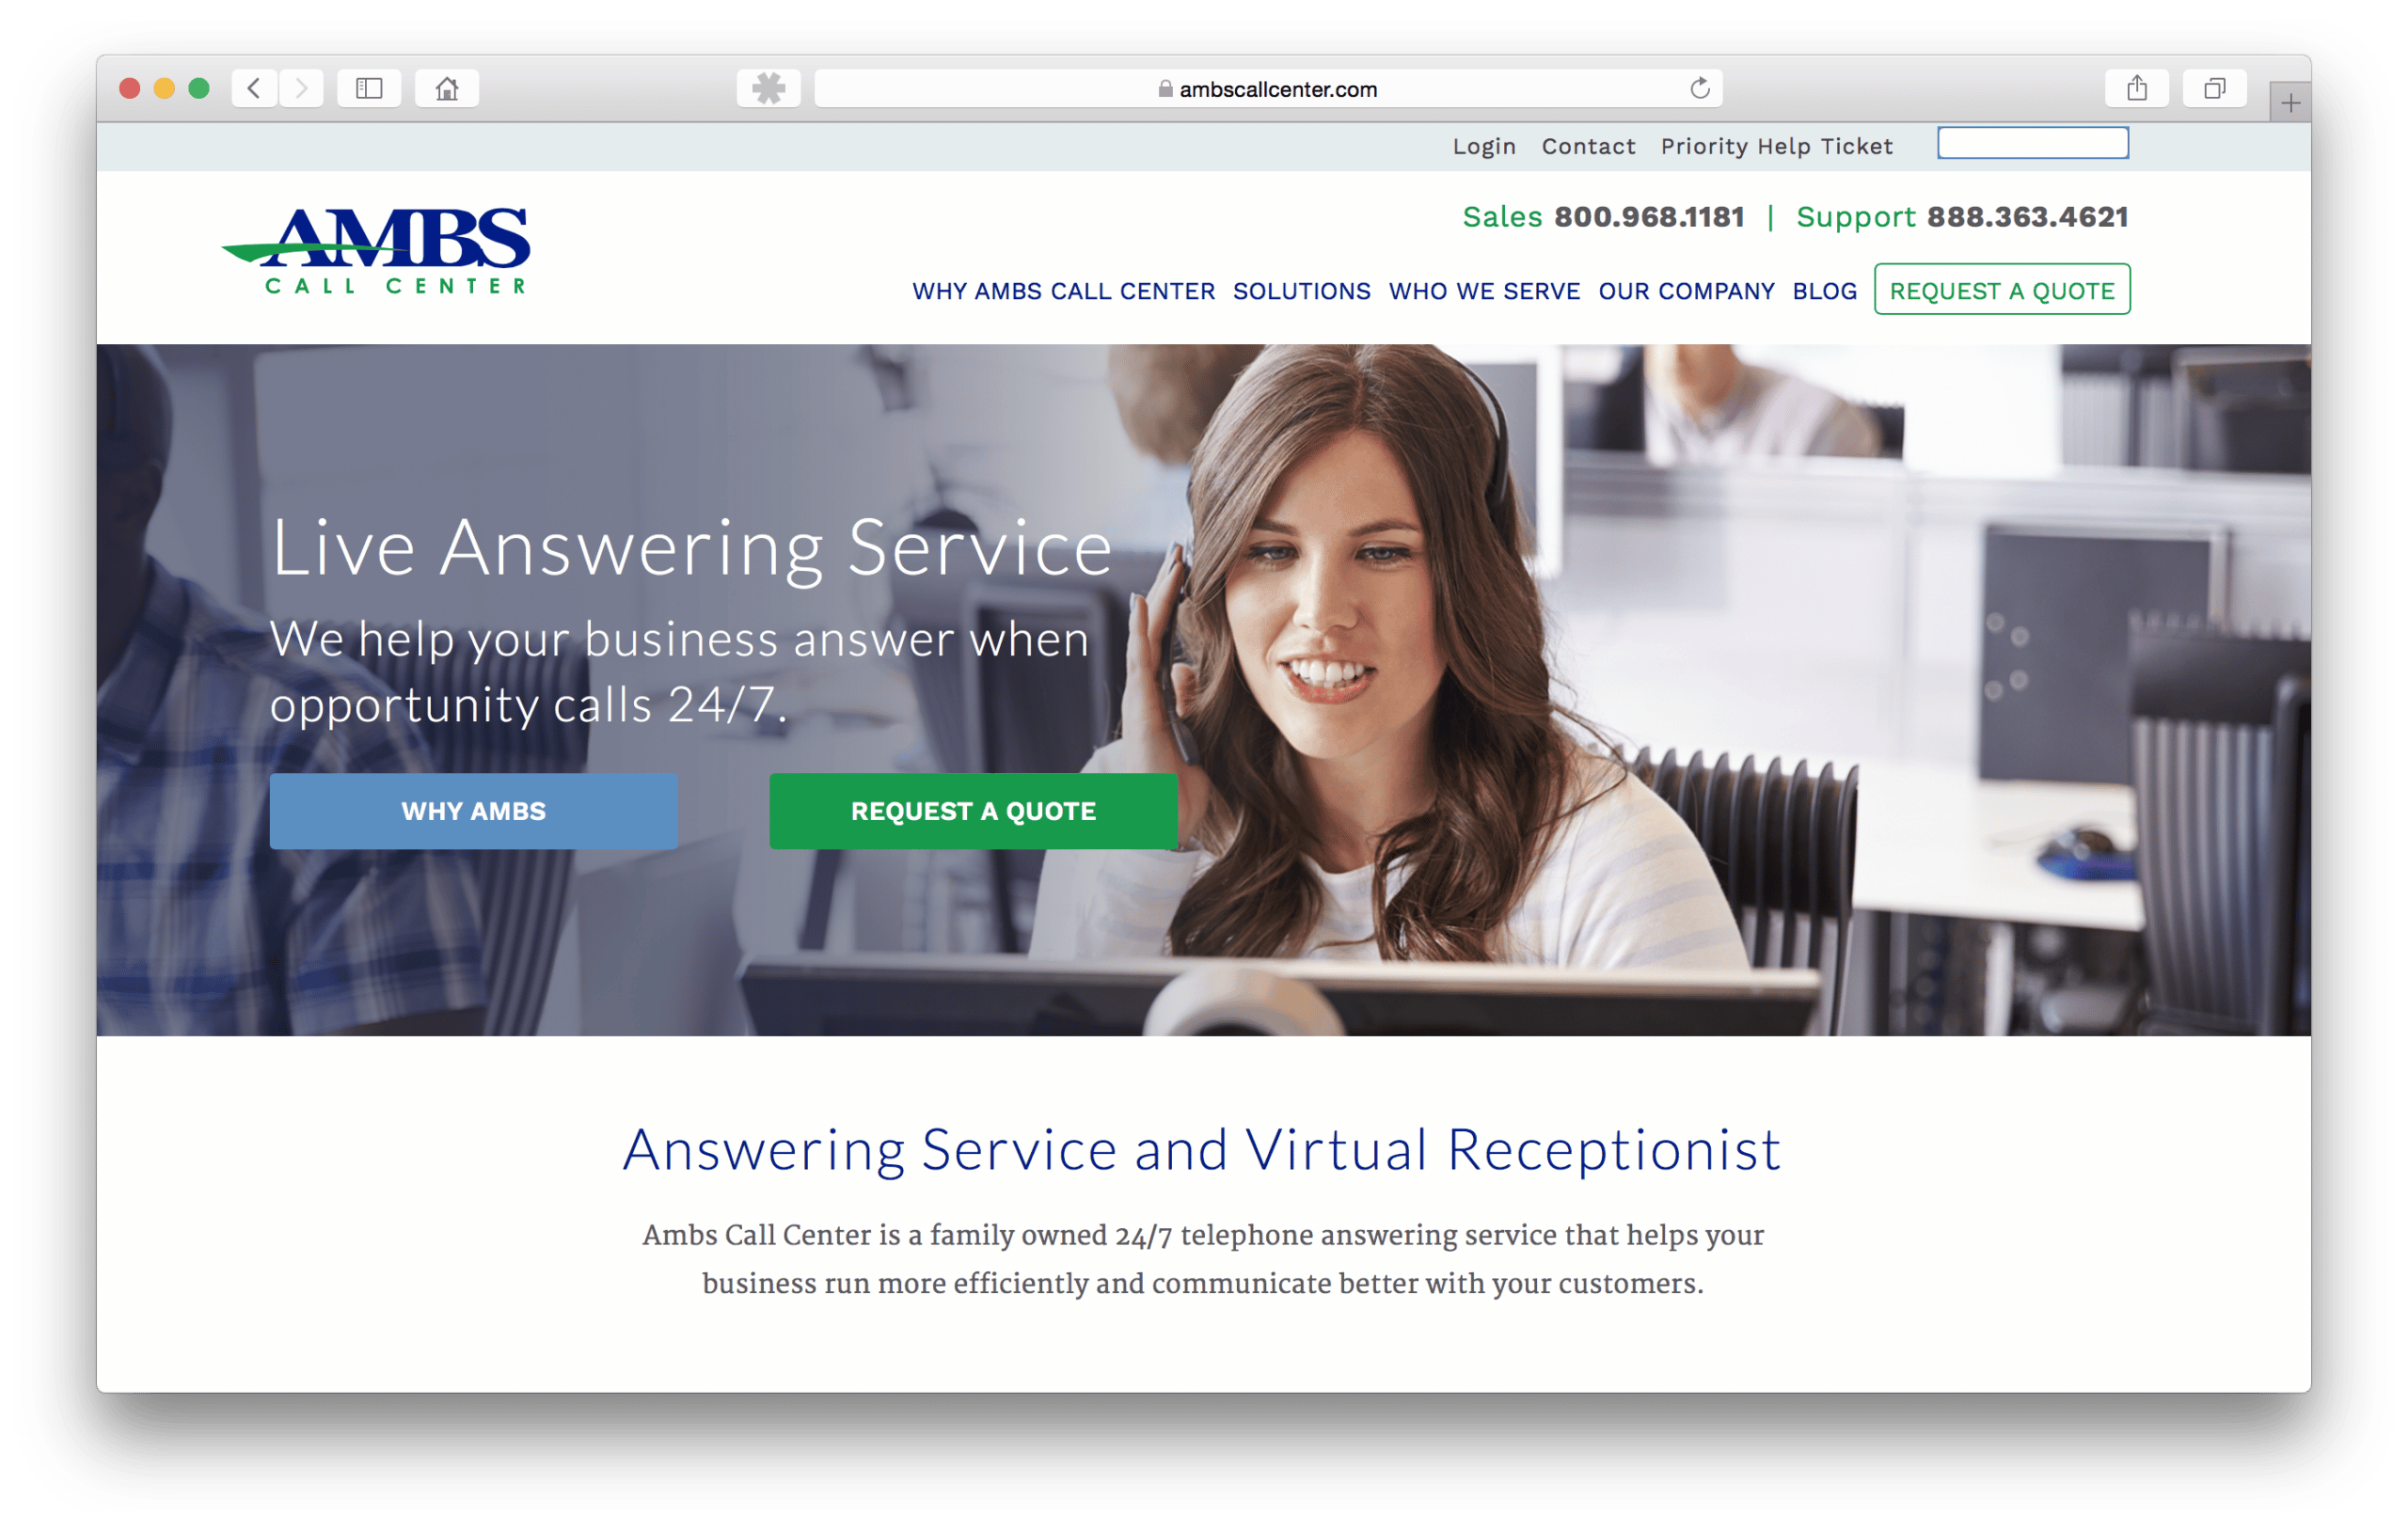 EXAMPLE: Ambs Call Center